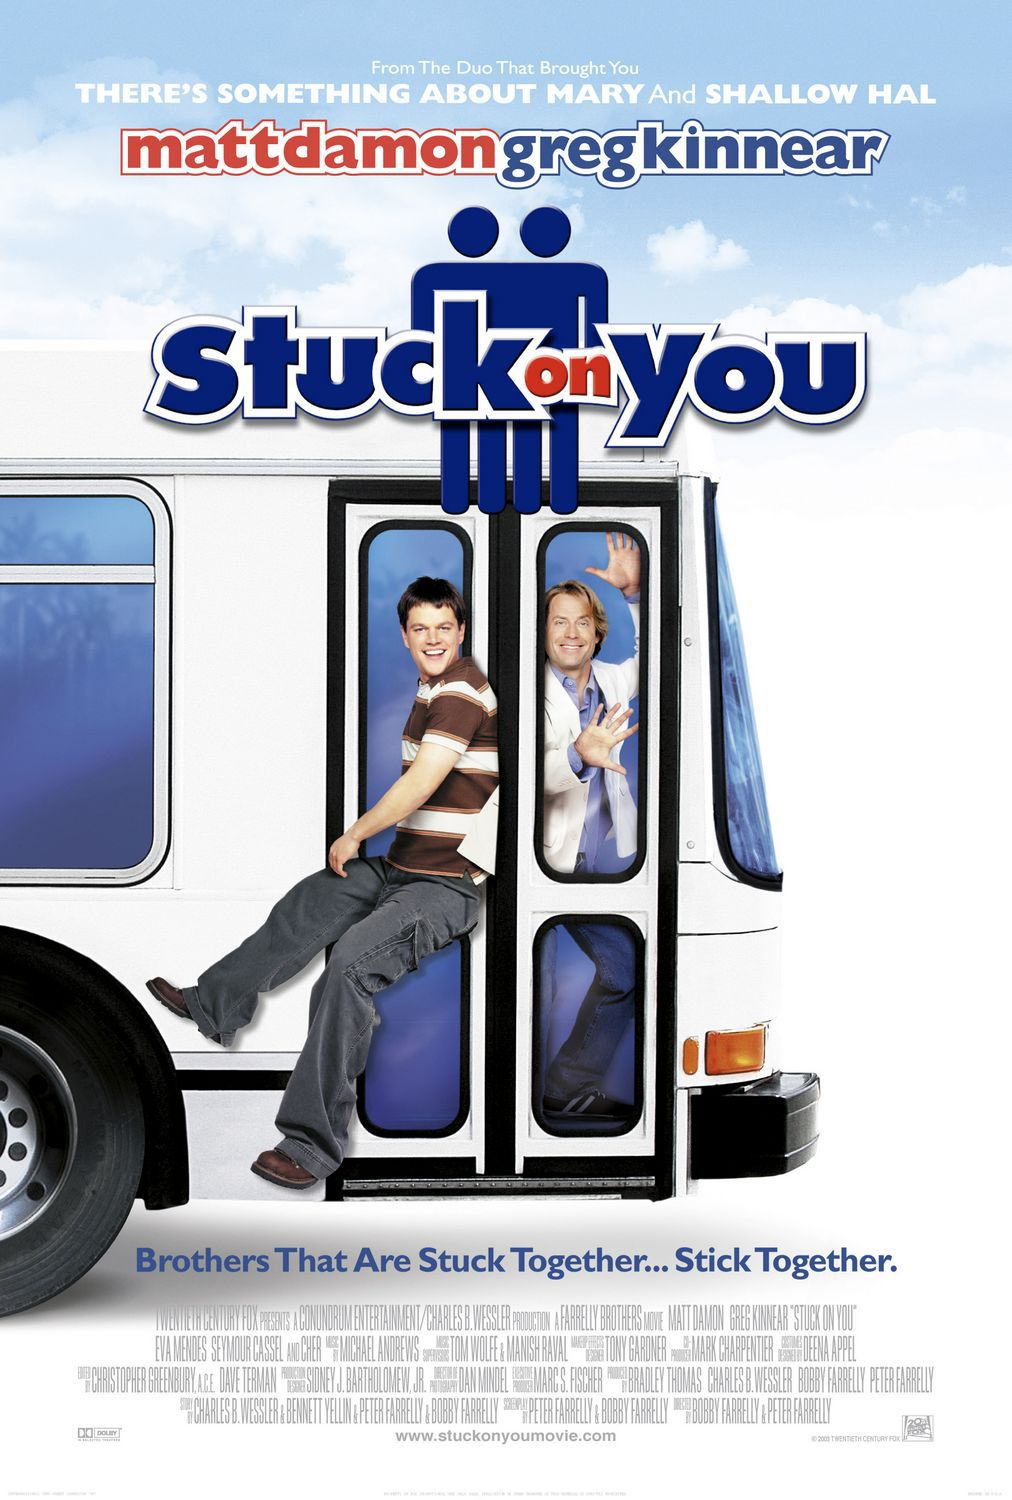 Fratelli per la Pelle - Stuck on you